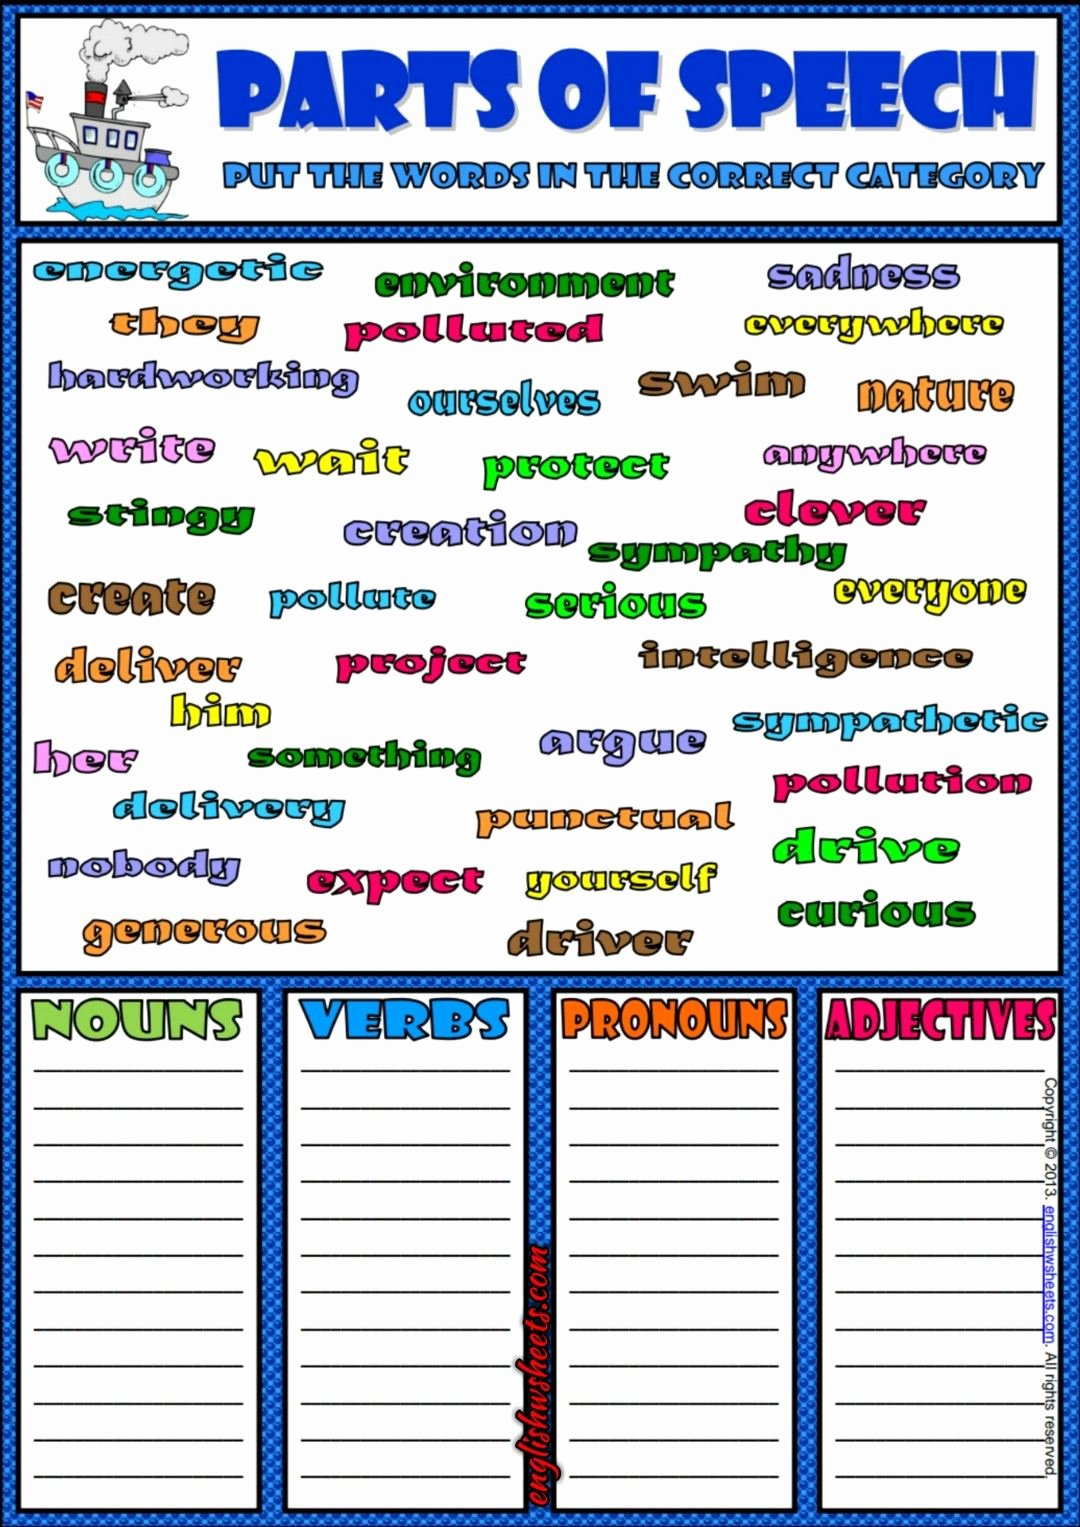 Parts Of Speech Worksheet Pdf Fresh Haus Und Mbel Worksheets Exercises Flashcards to Practice